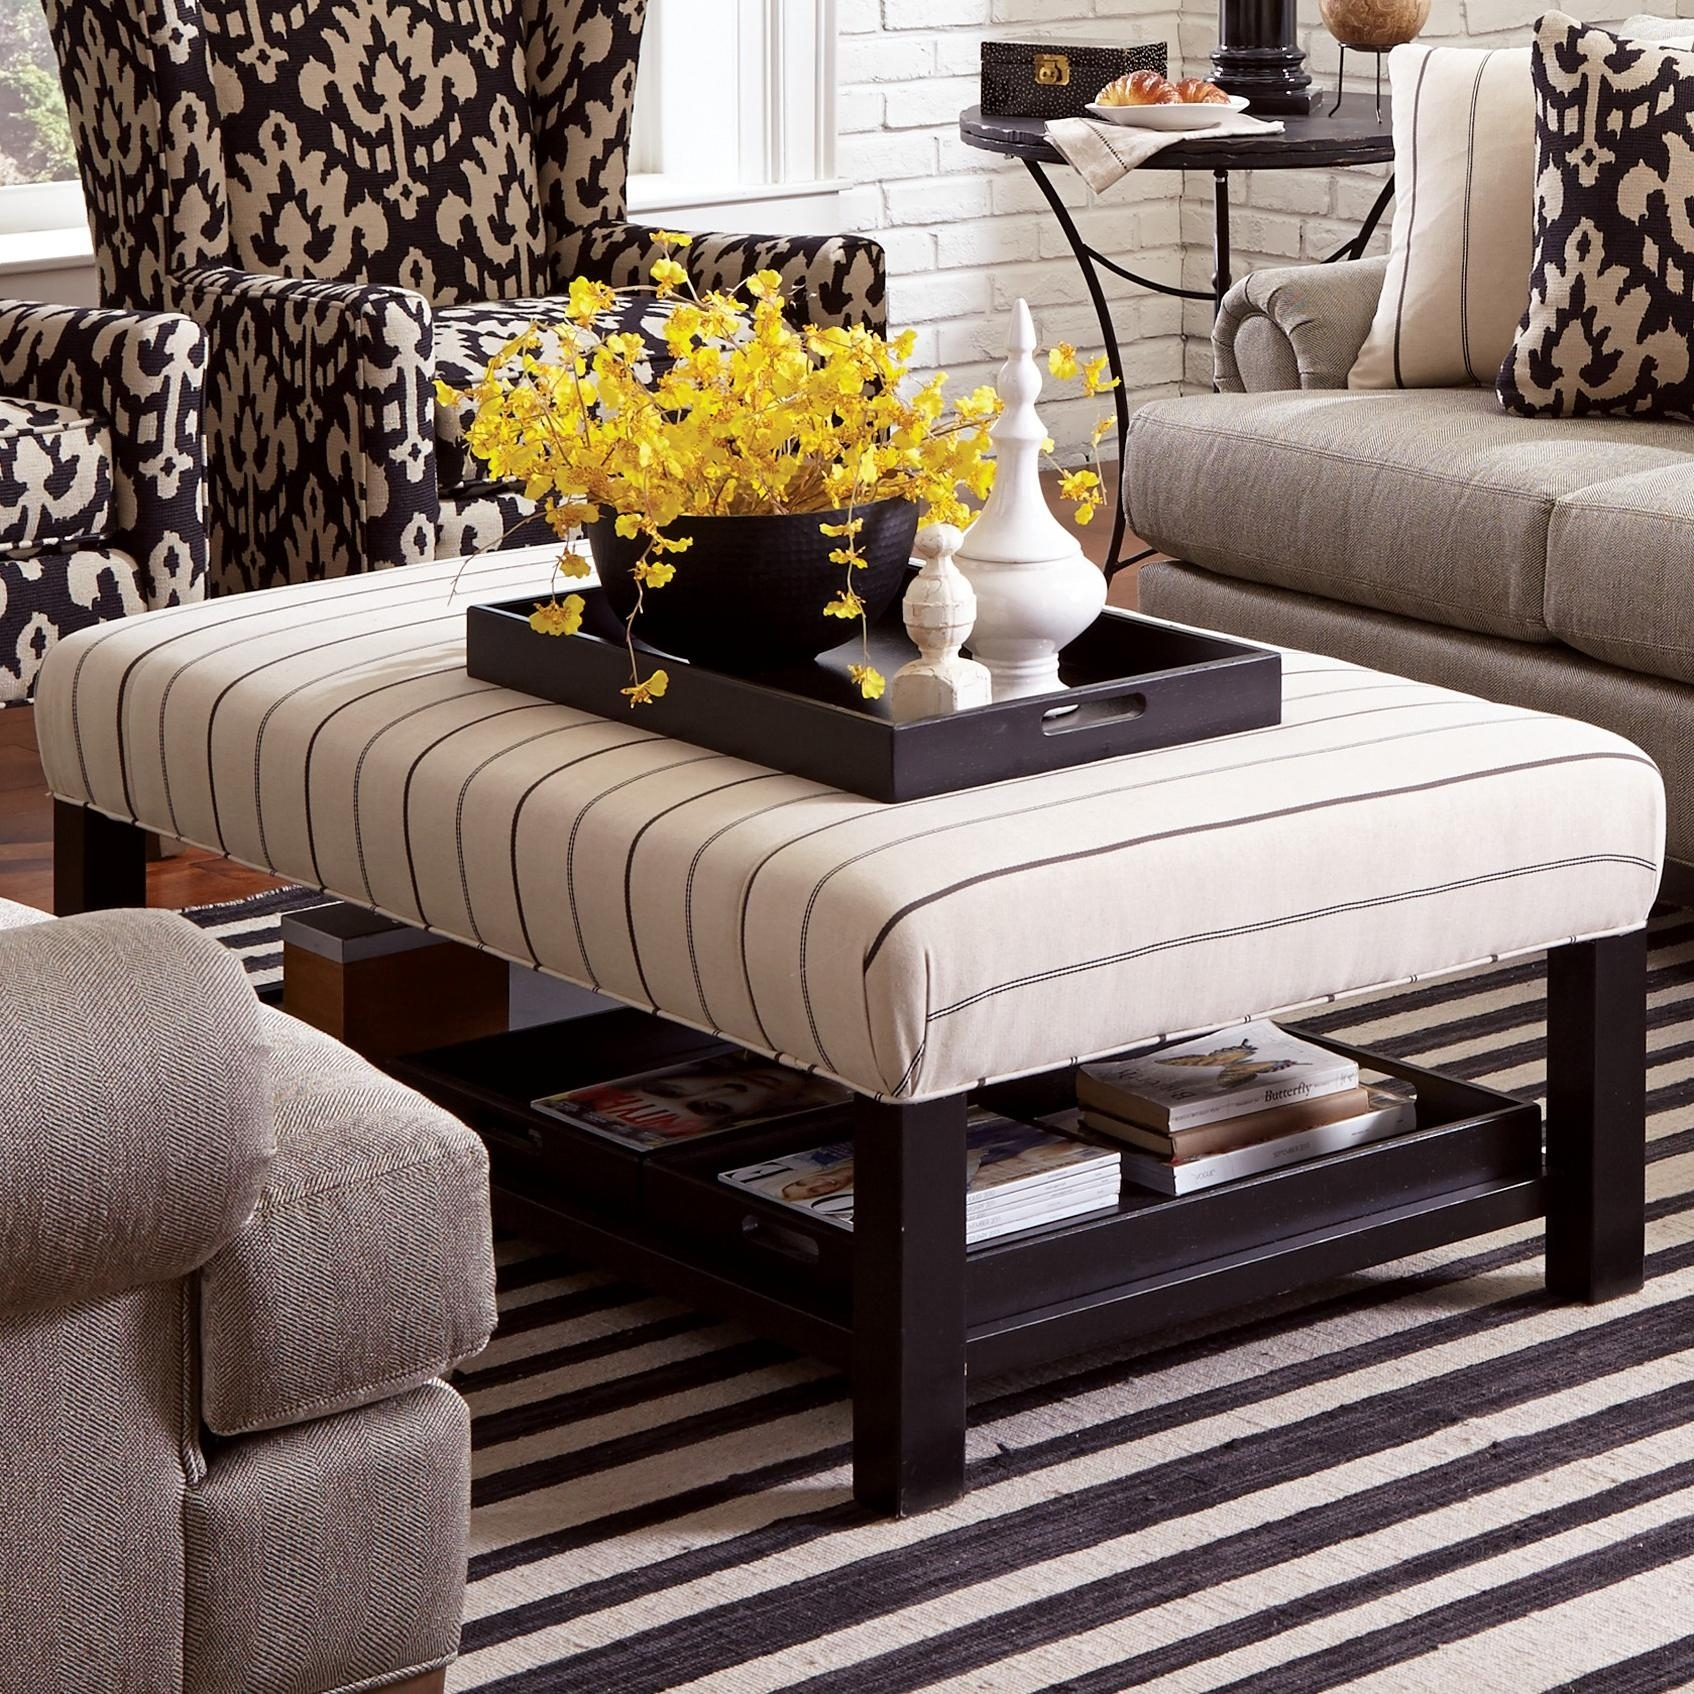 Uncategorized : Ottoman Coffee Table Tray Ideas Within Elegant For Ottomans With Tray (Photo 6 of 10)